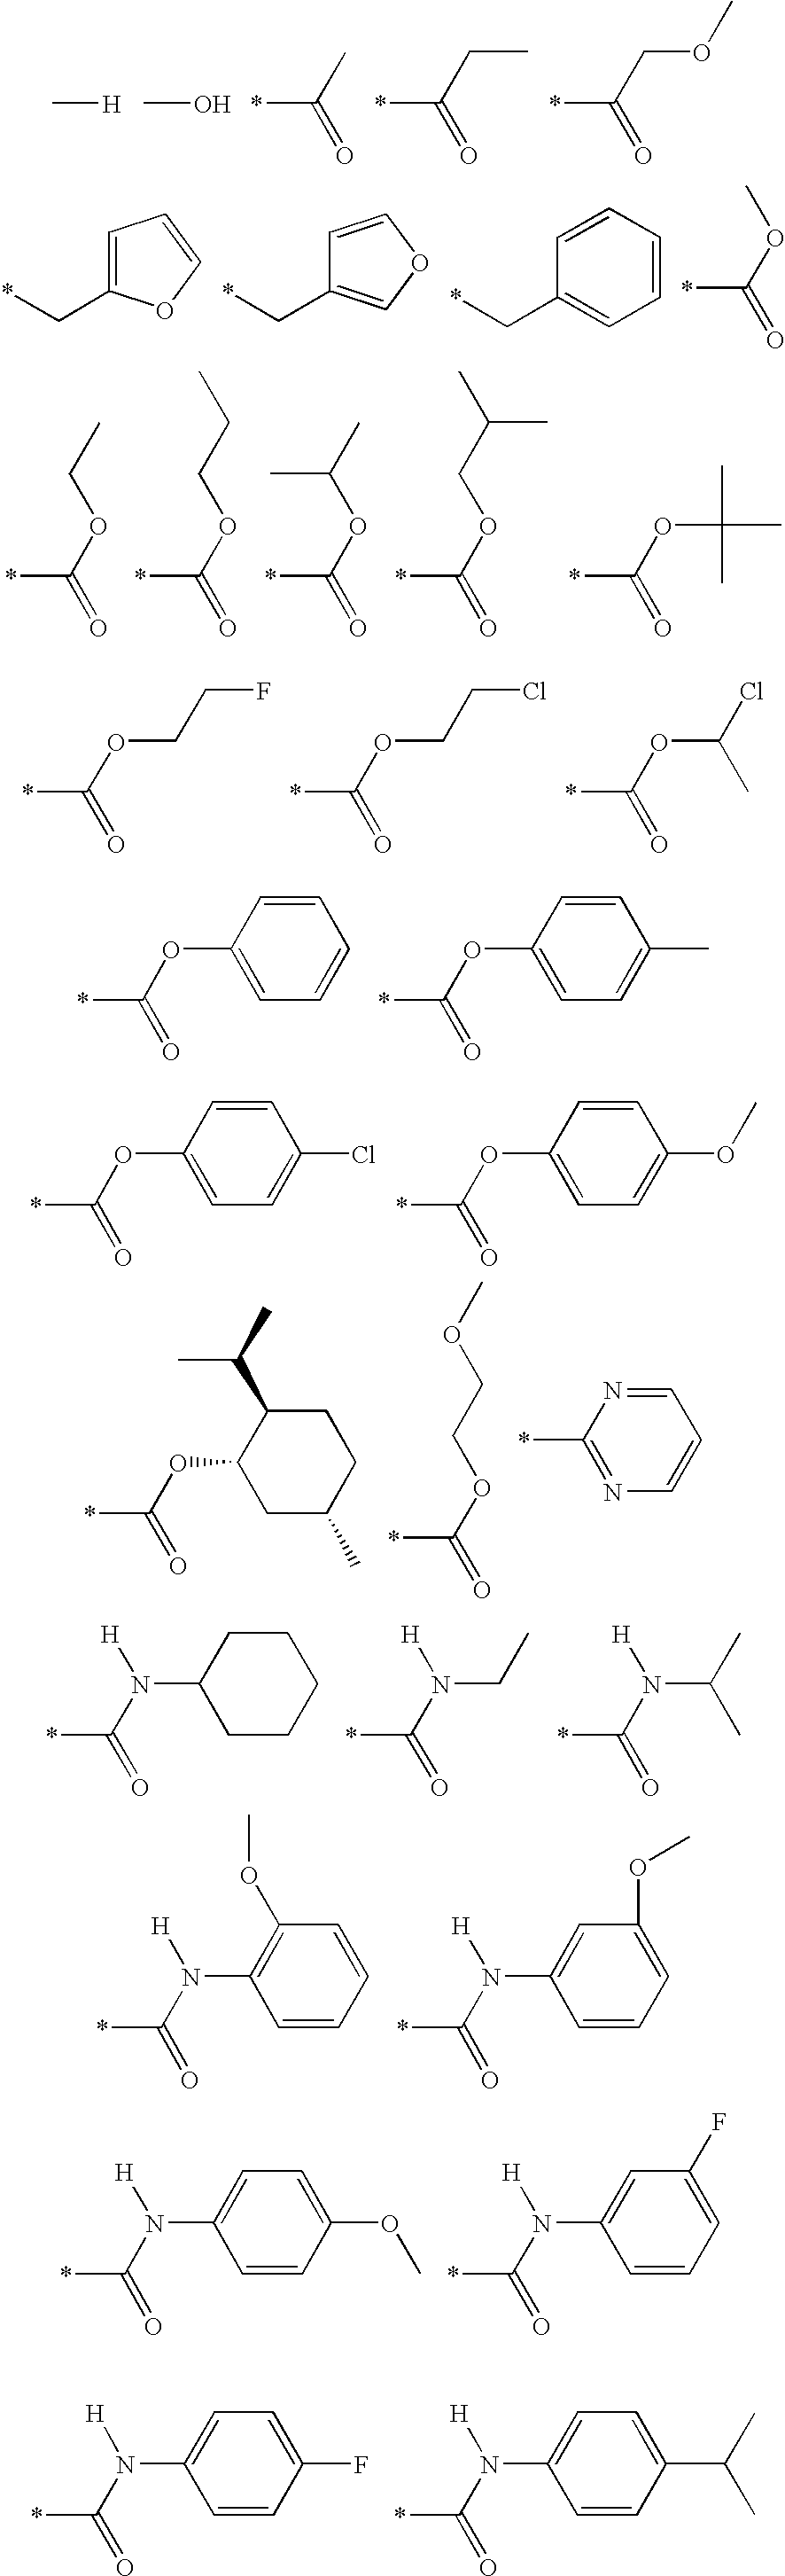 us8076352b2 administration of carboline derivatives useful in the Asco 940 Transfer Switch Manual figure us08076352 20111213 c00018